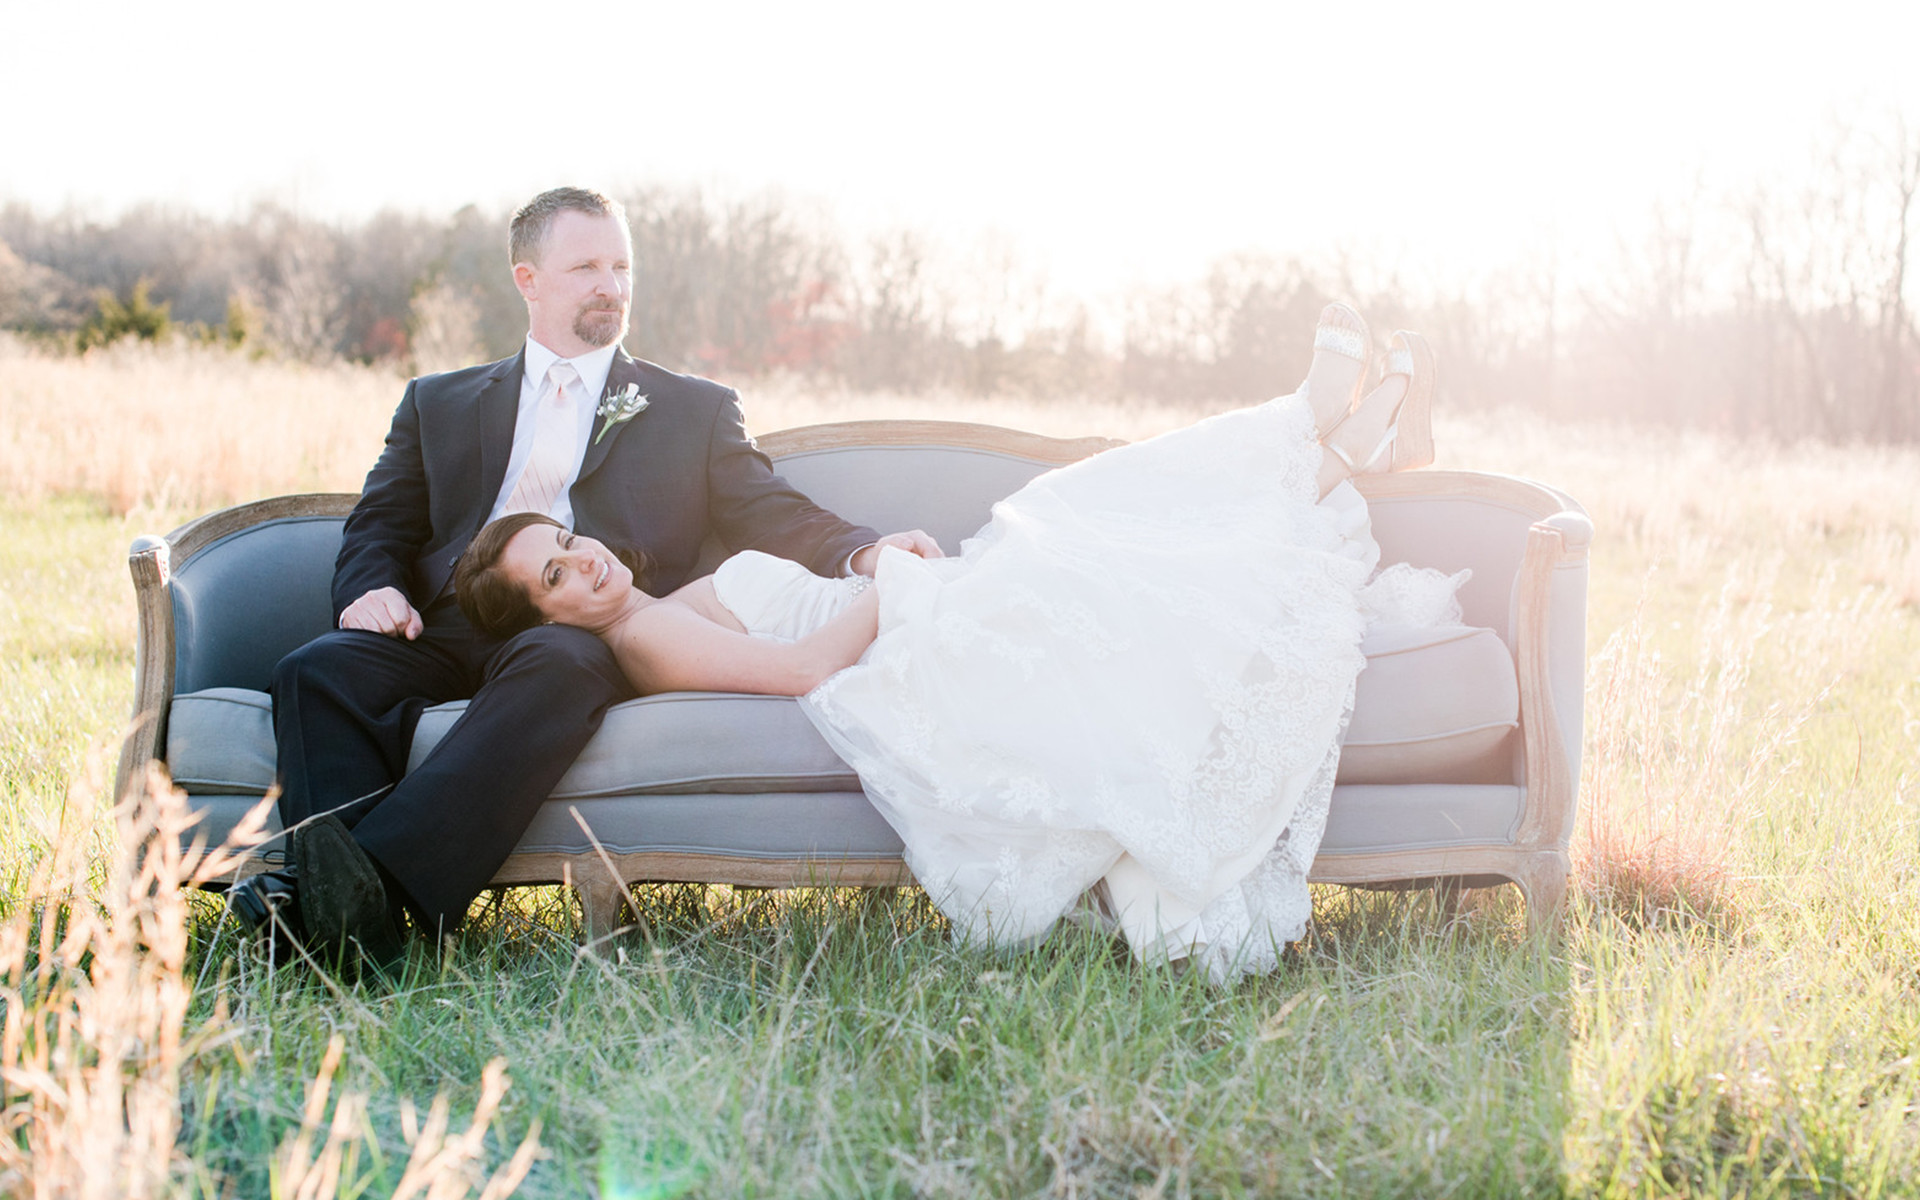 Vintage Wedding Dresses Raleigh Nc: Country-Chic Wedding With A Vintage Couch Photo Shoot